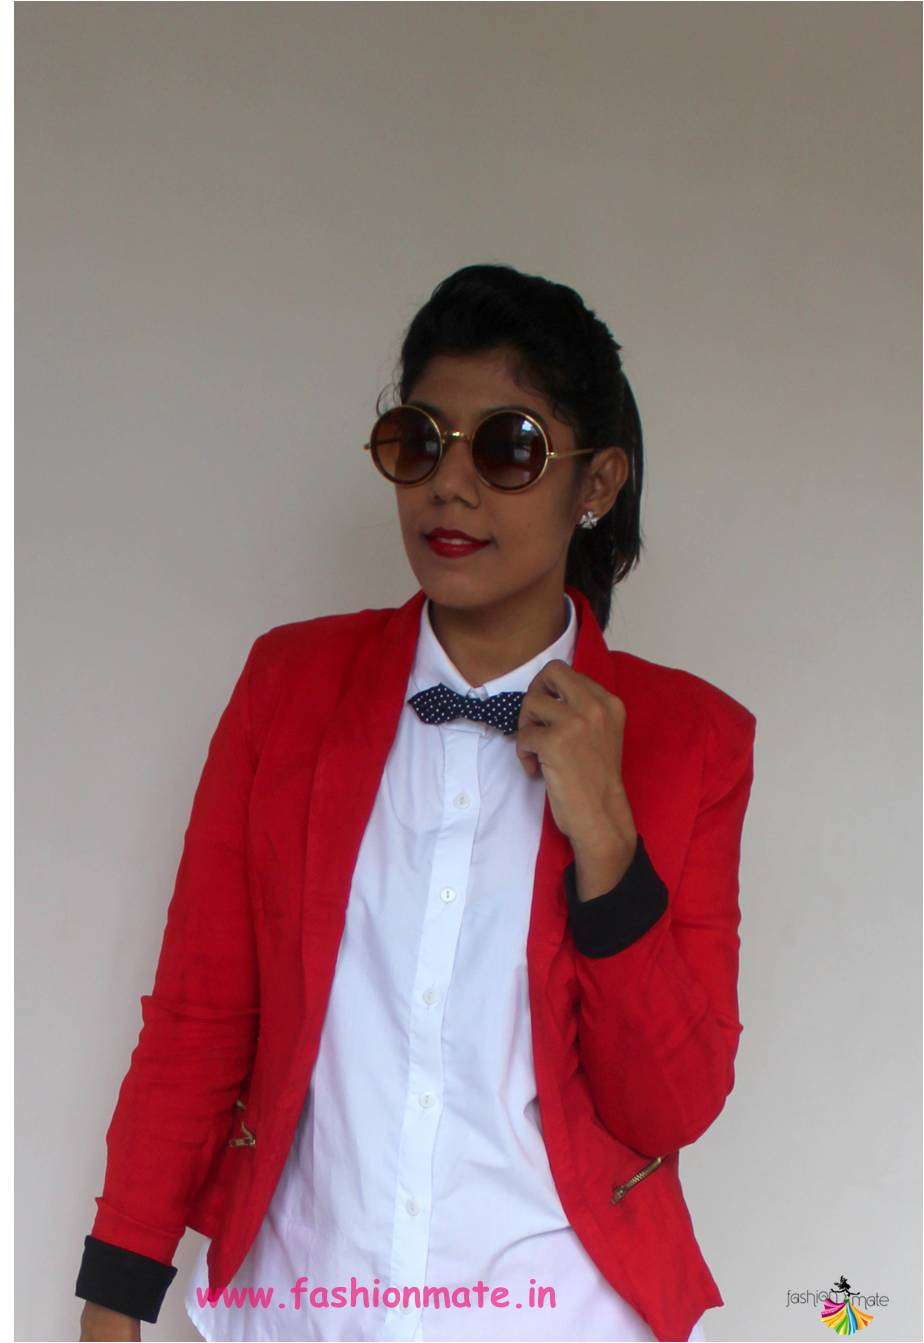 how to style a bow-tie - Indian fashion blogger style tips